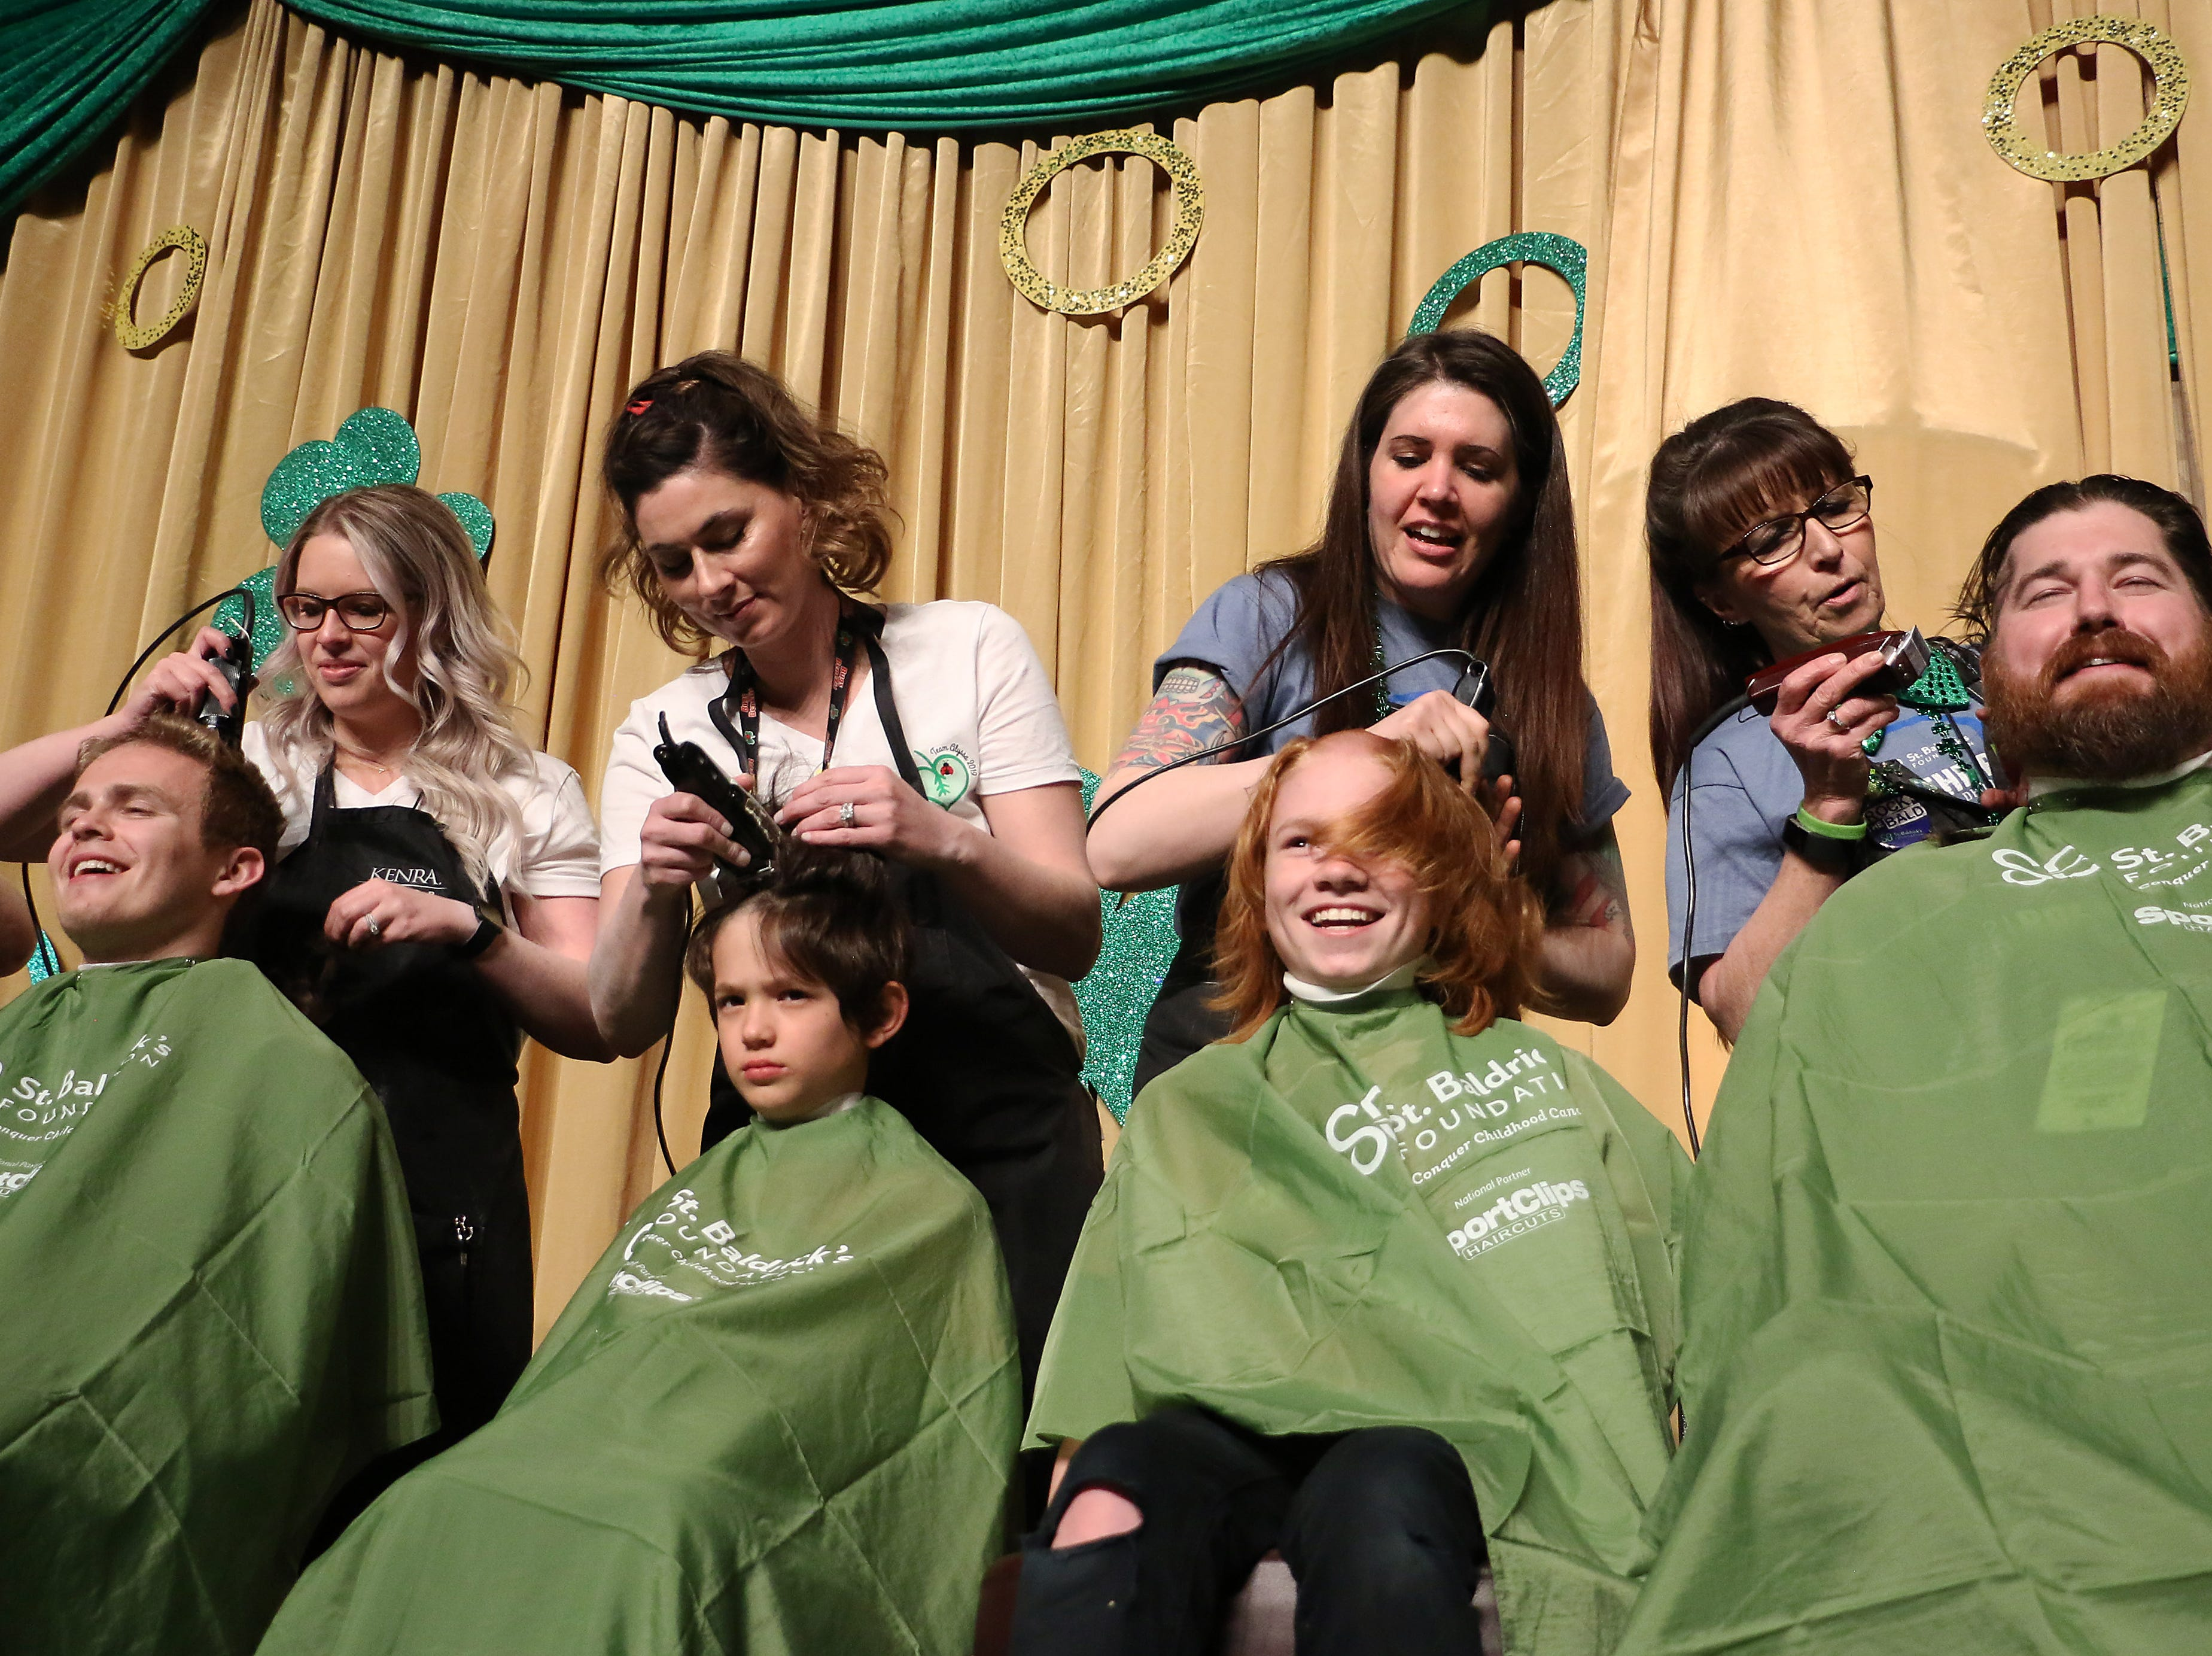 People of all ages participate in the Northern Nevada Children's Cancer Foundation and the St. Baldrick's Foundation's fundraising head-shaving event at the Downtown Reno Ballroom on March 15, 2019.